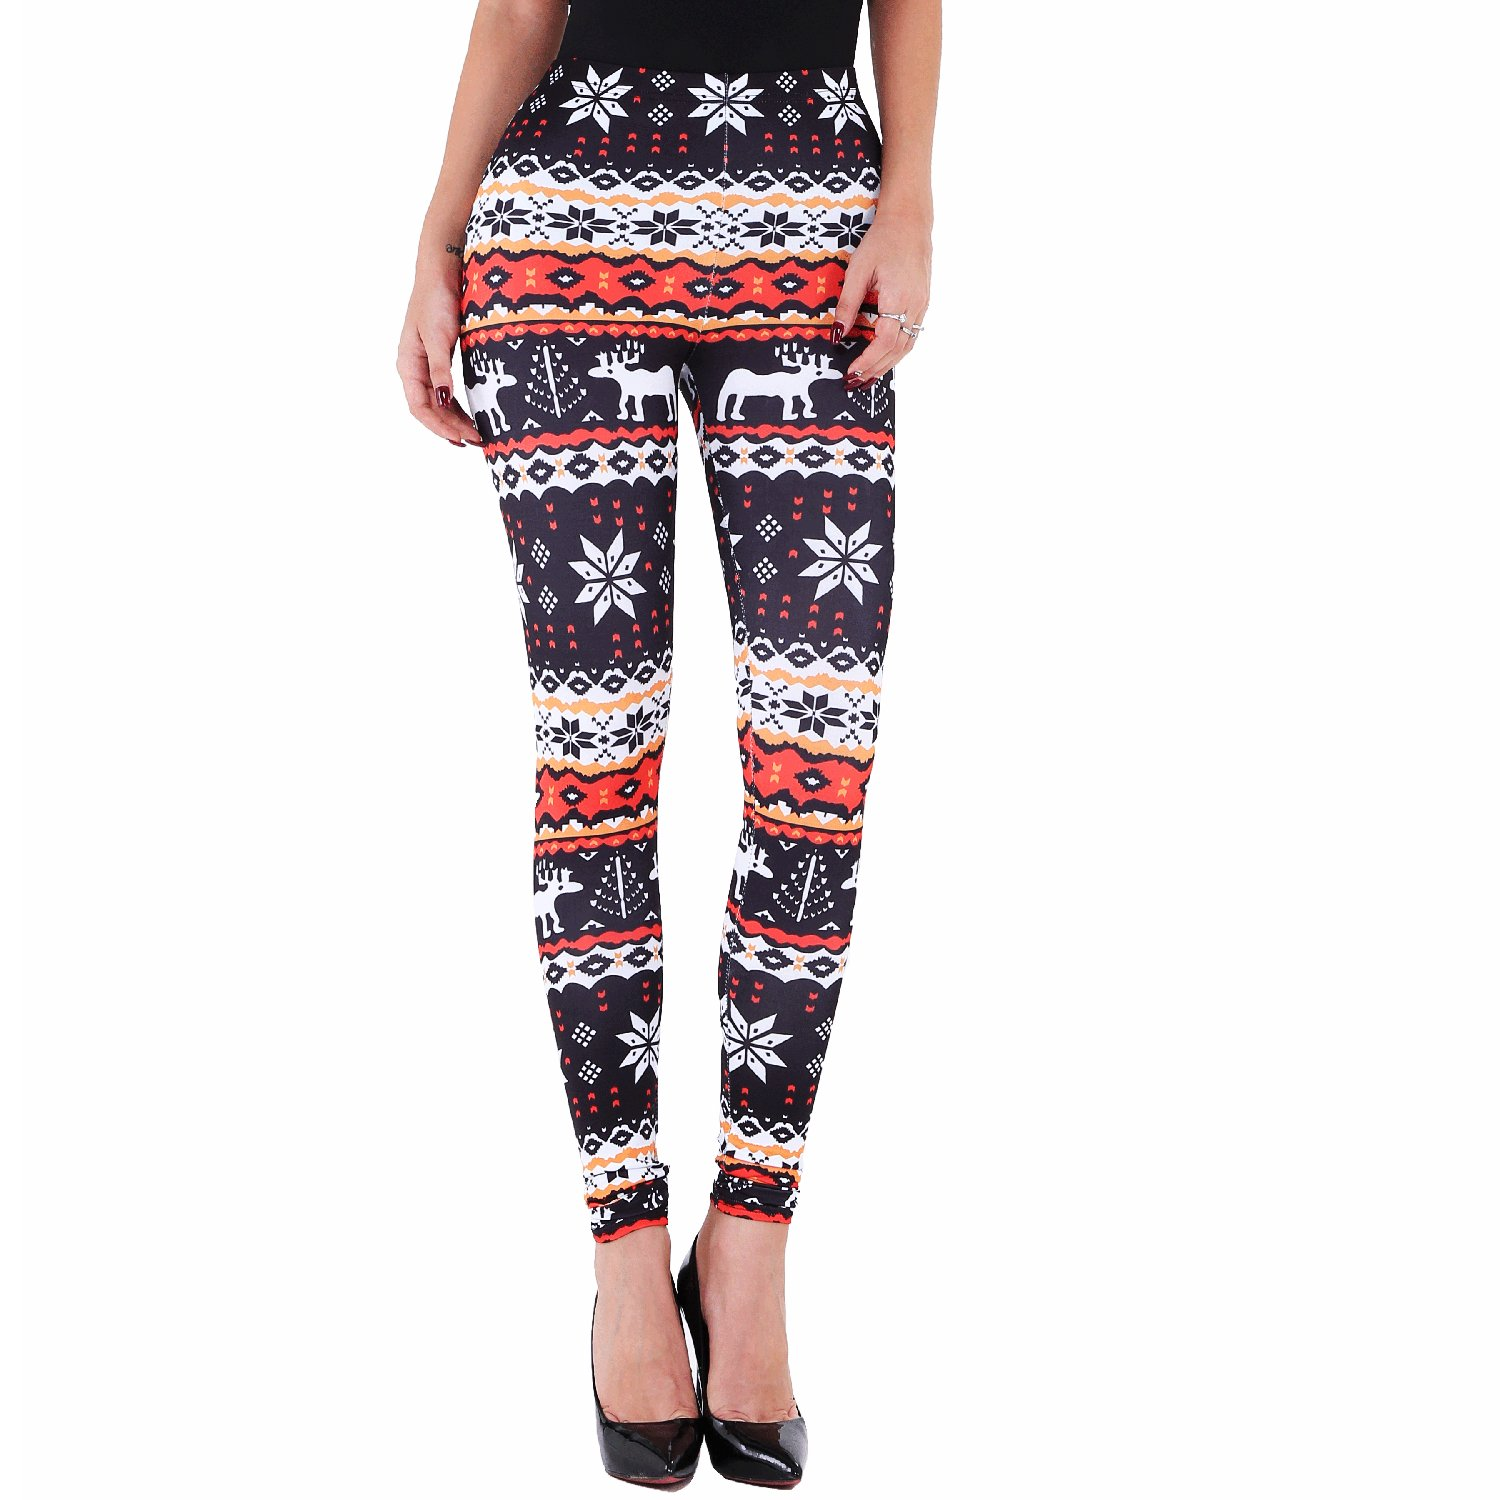 50161958967e5d Flake graphic reindeer geometrical designs printed/stretch/leggings pants  for Christmas Day and other festive holidays. Leggings pants, fit for Yoga,  ...